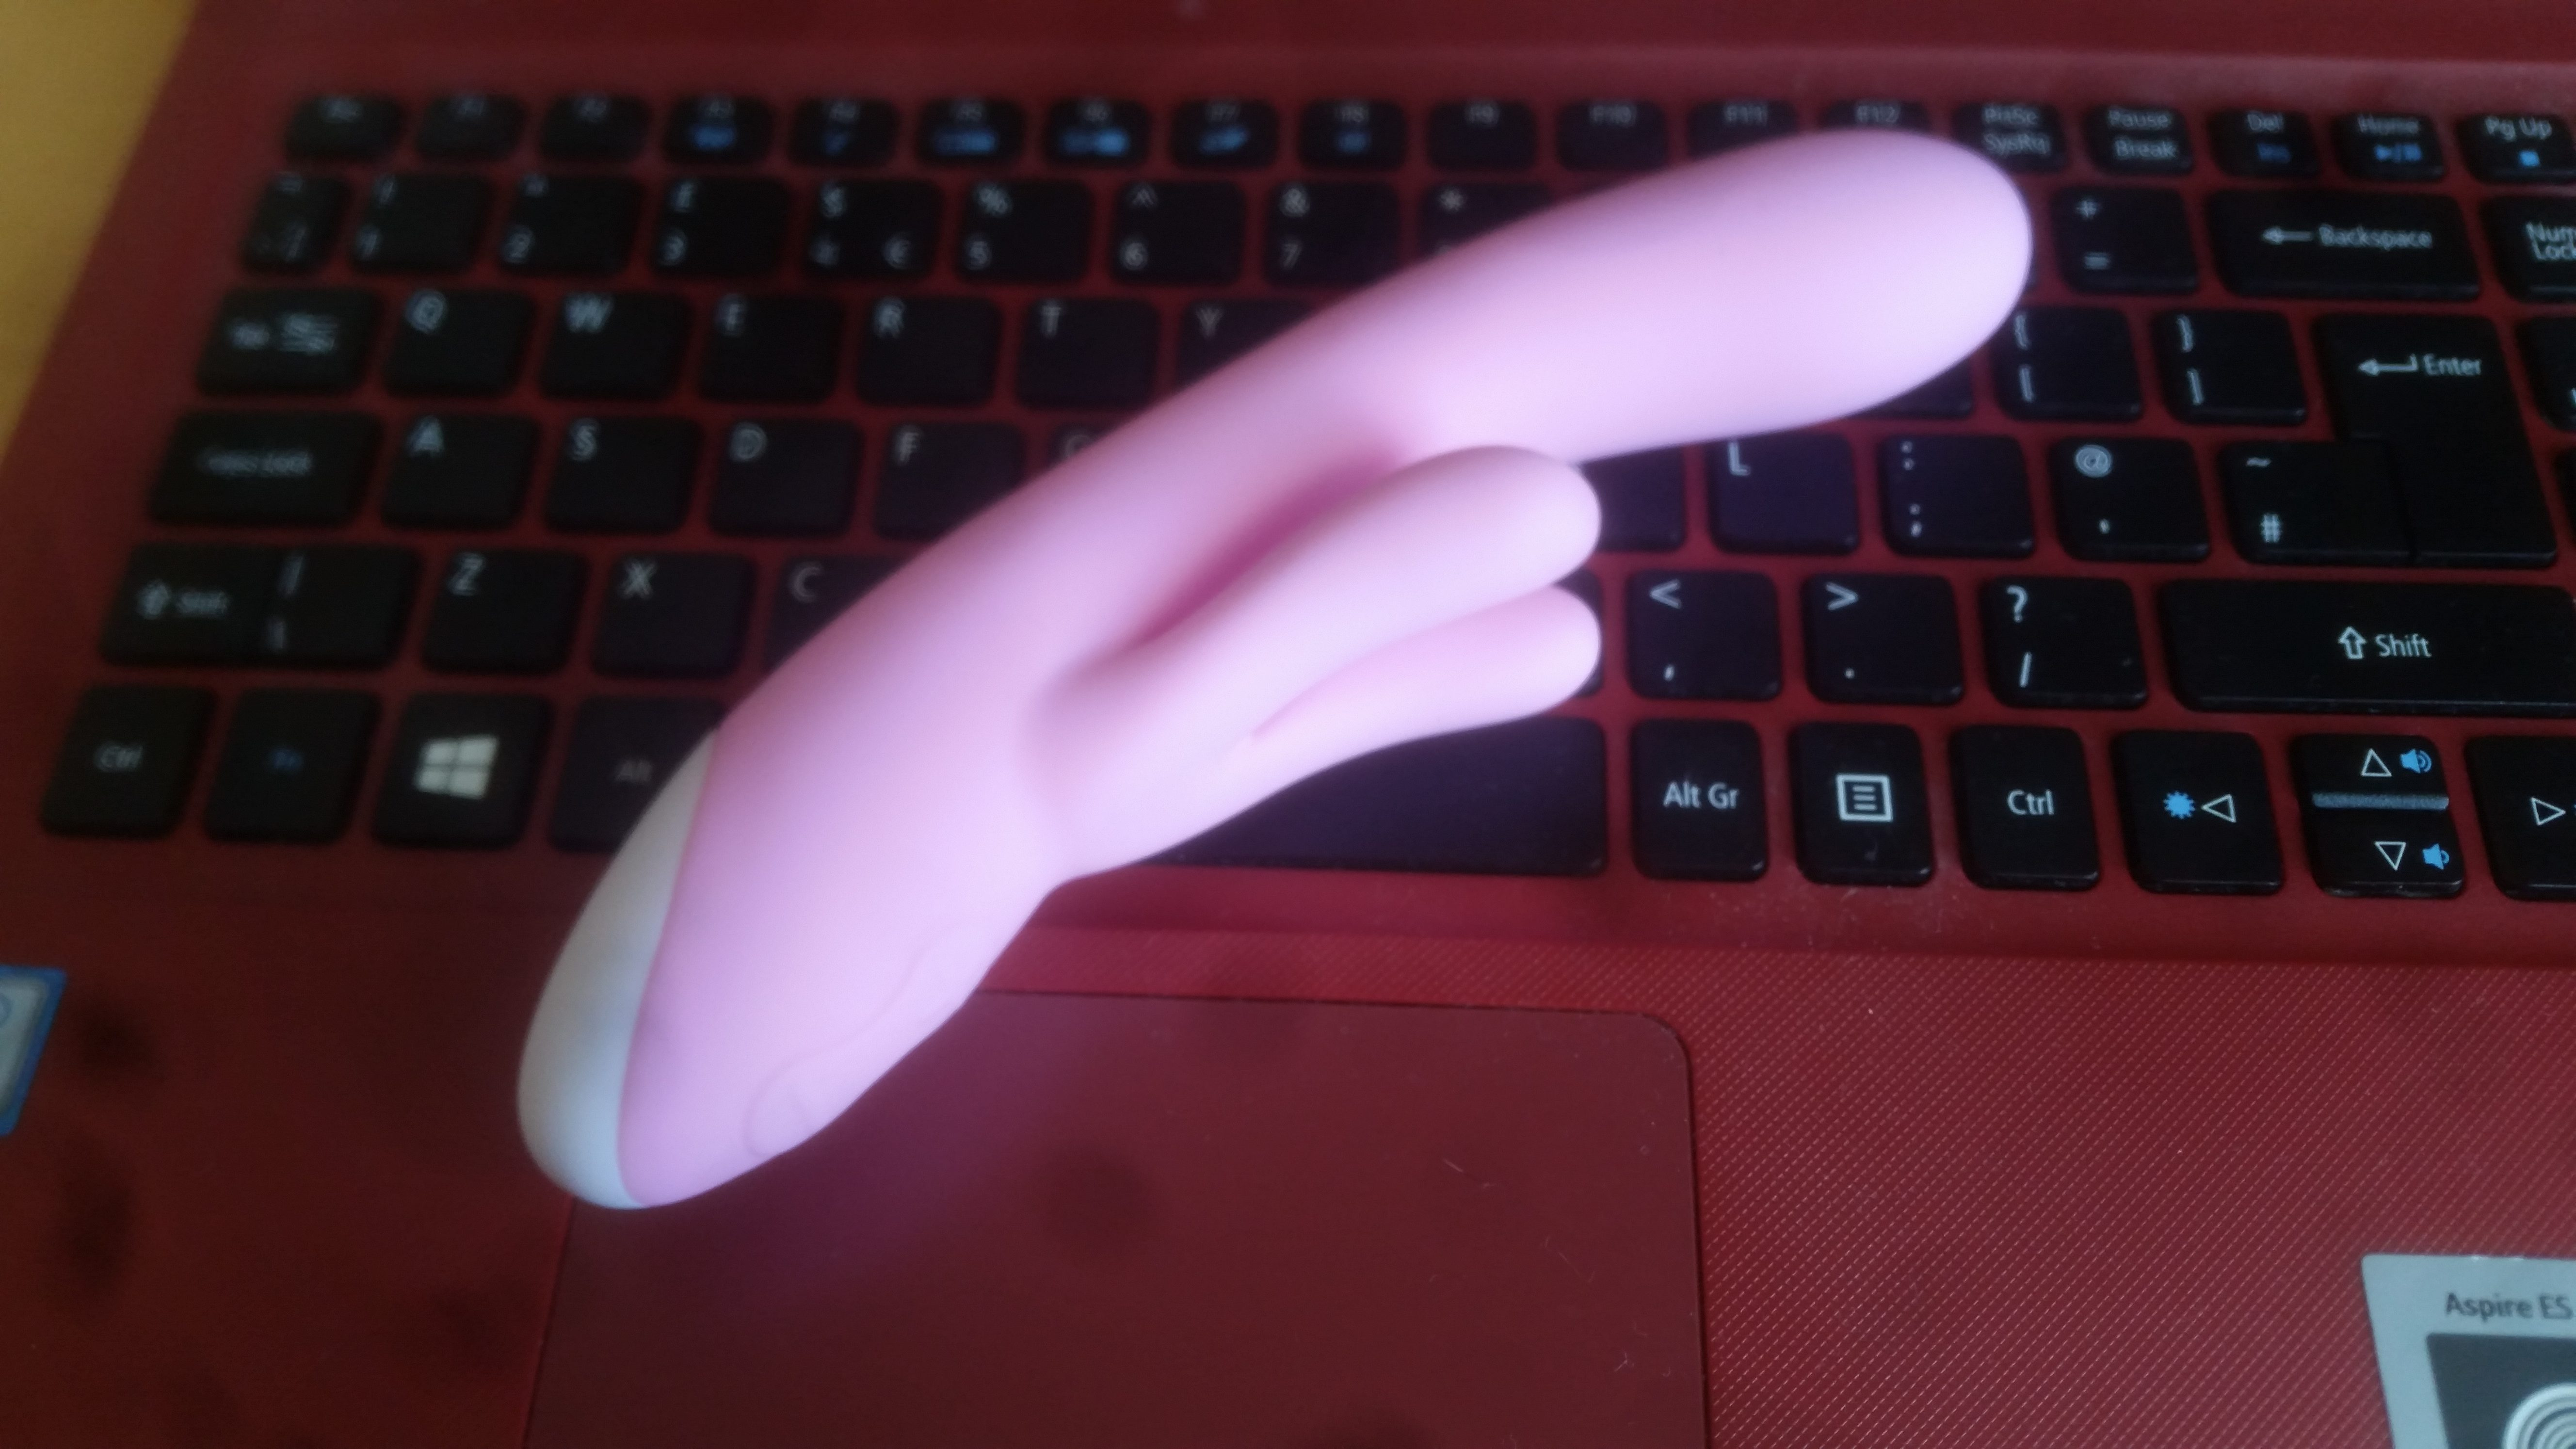 A pink rabbit vibrator lying on a red and black laptop keyboard.